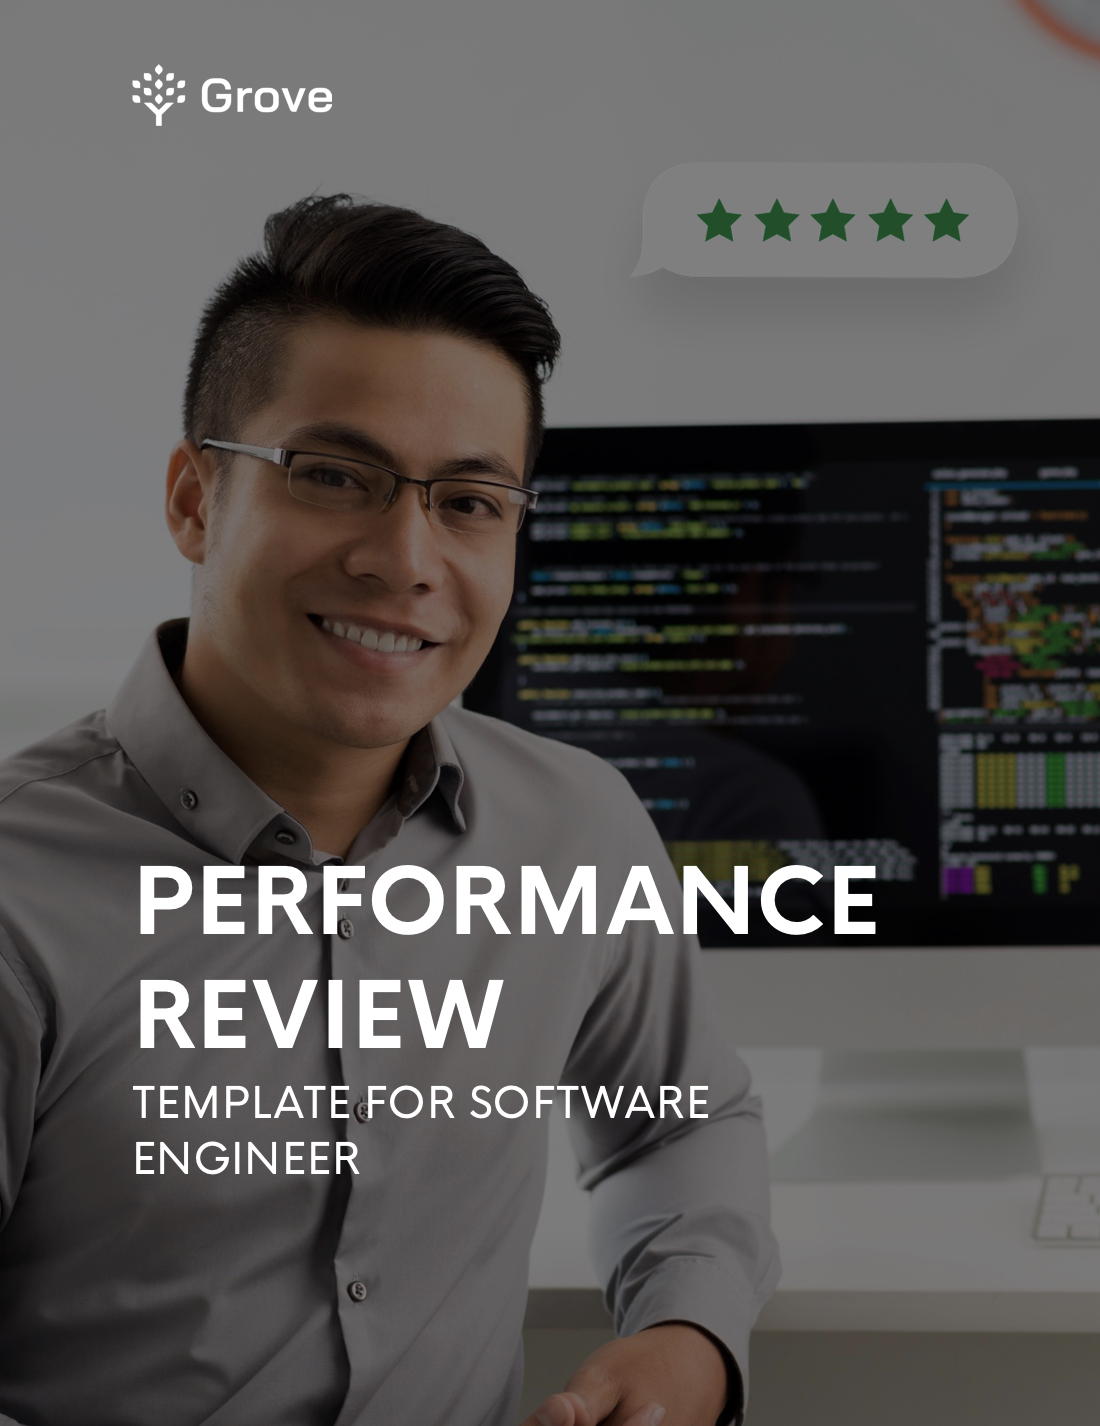 Grove HR - Software engineer performance review template slider 1